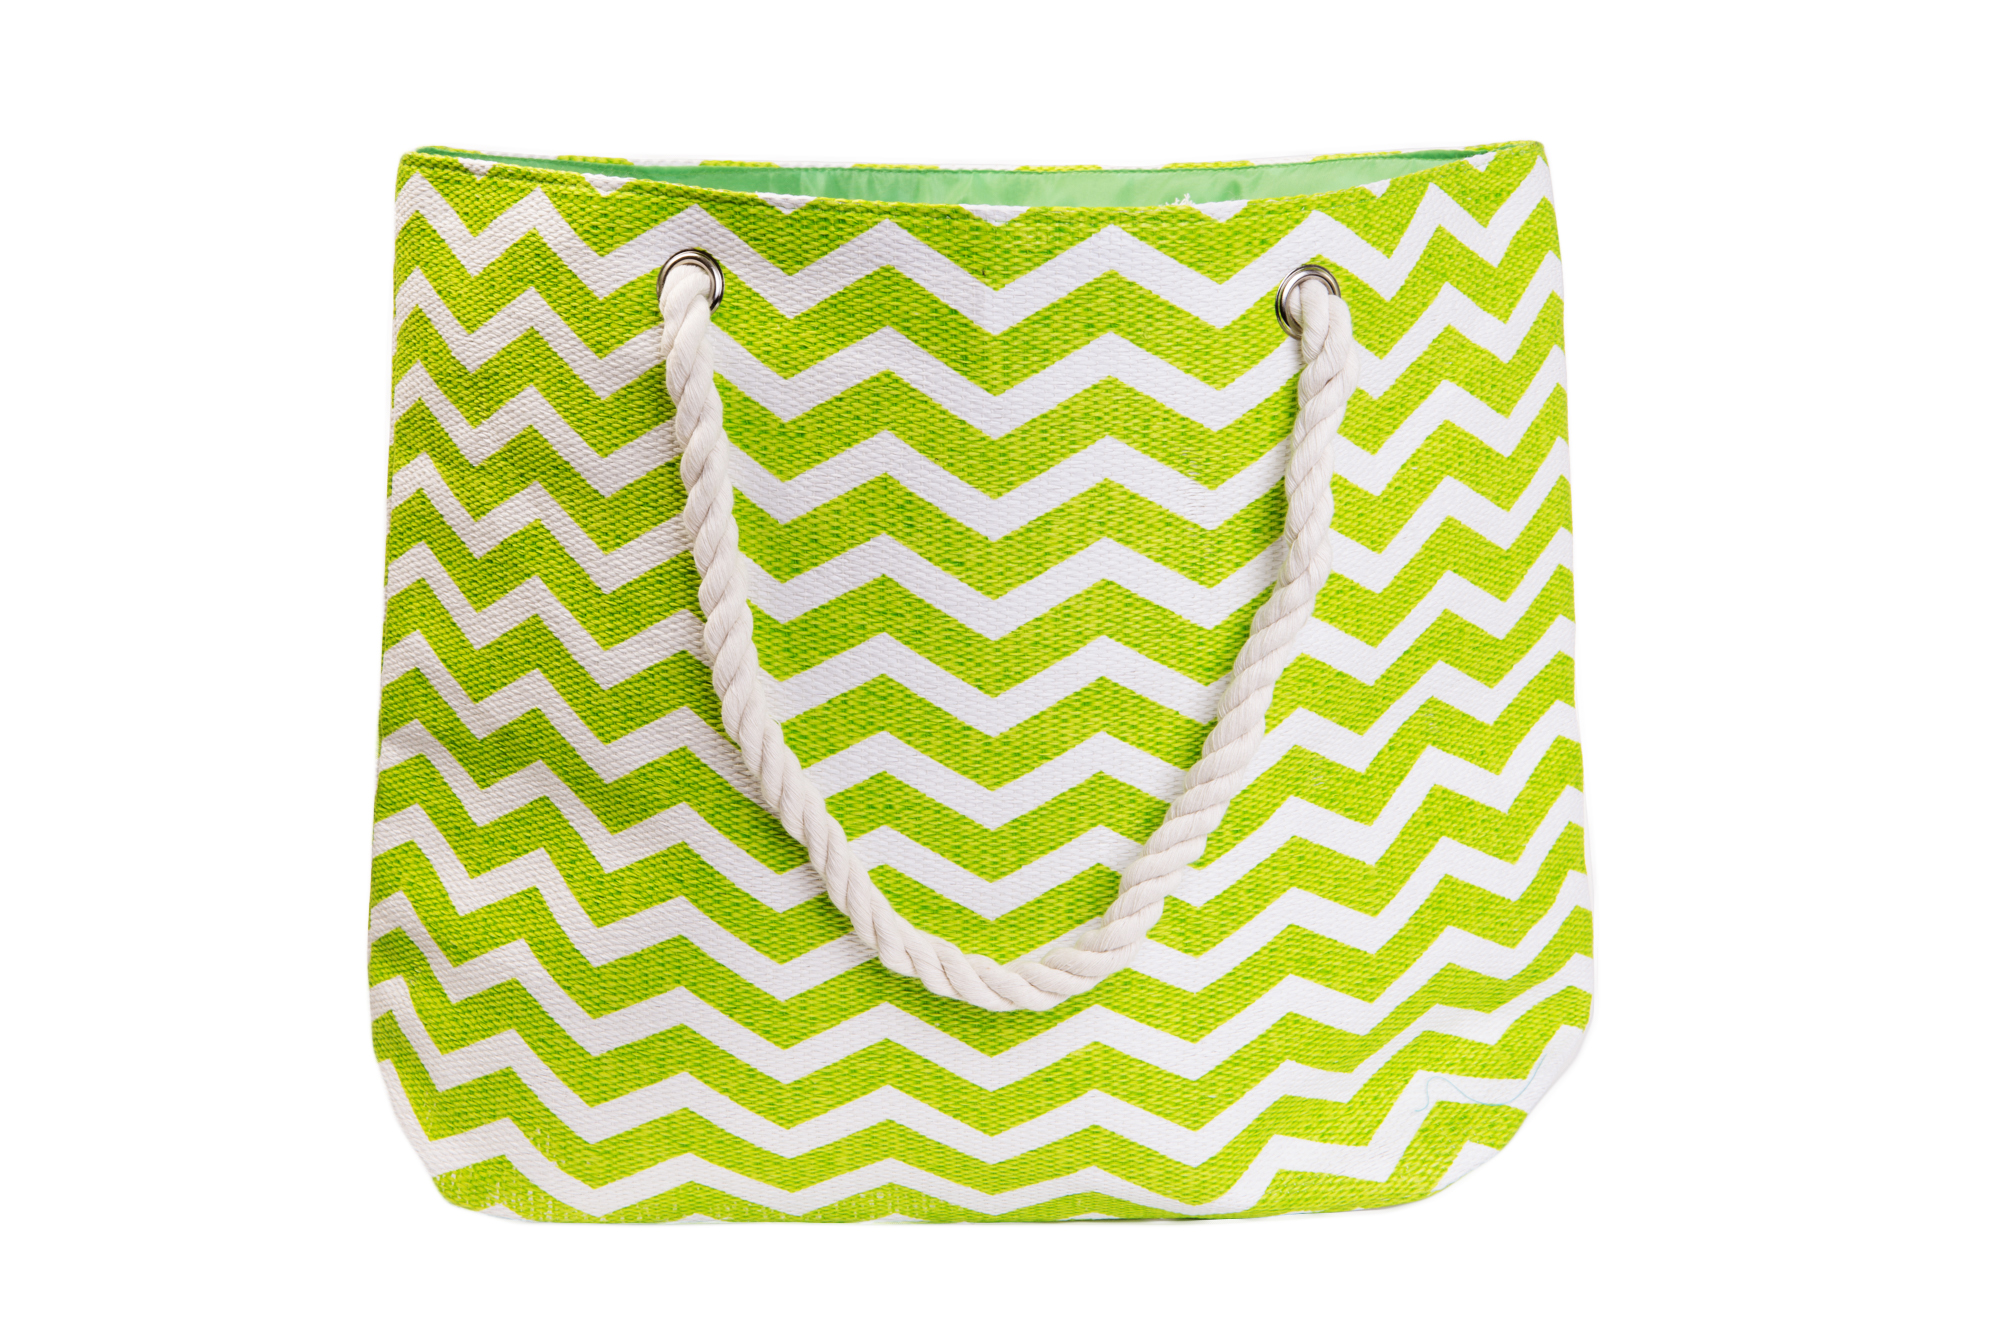 Straw Beach Bags W/ Pocket - Green Chevrons